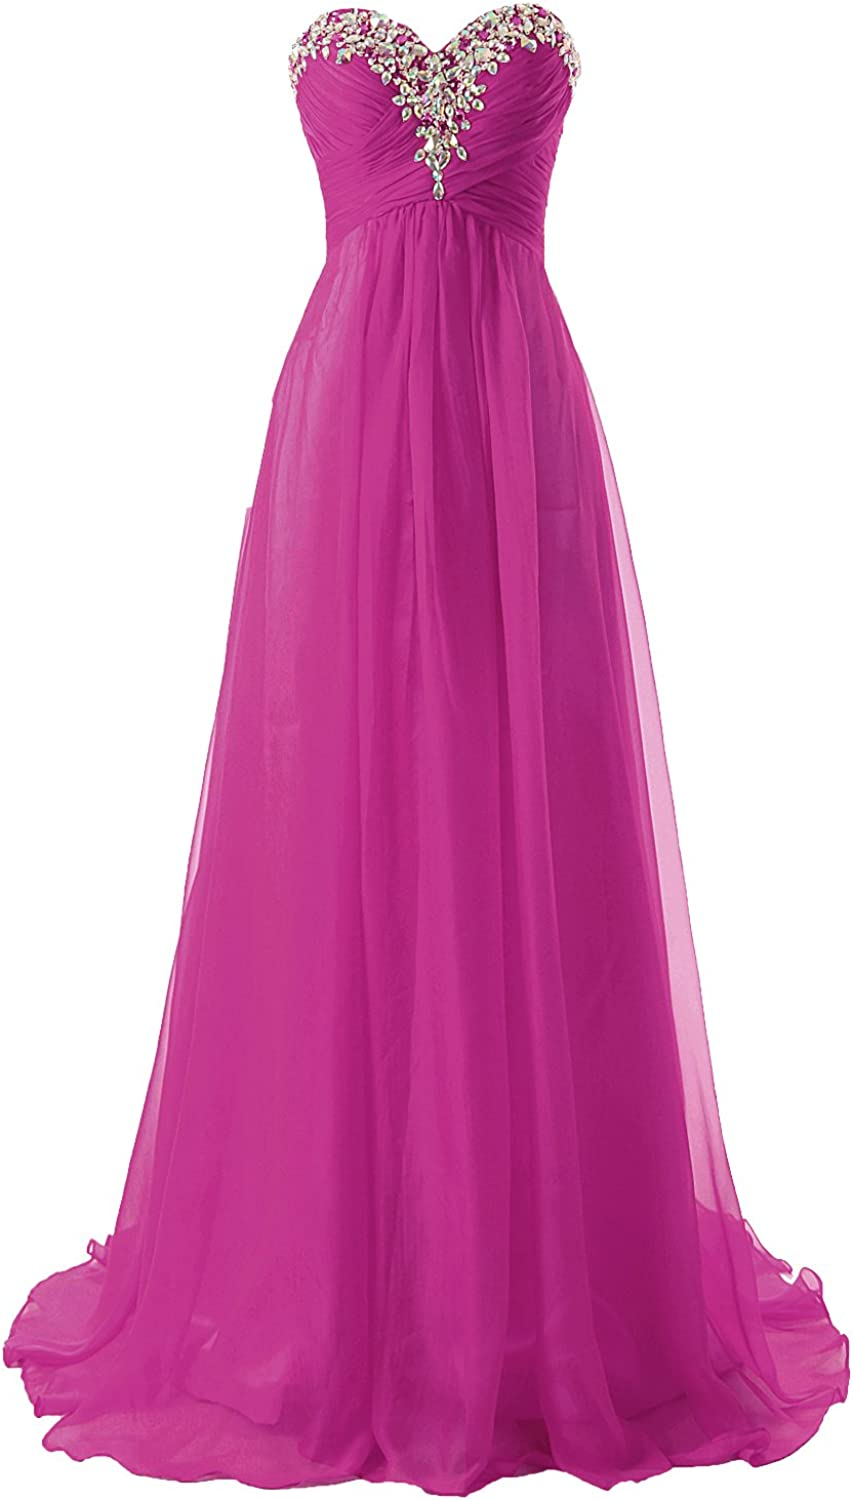 JAEDEN Prom Dress Bridesmaid Dresses Long Formal Evening Gowns Prom Gown Chiffon A line Evening Dresses